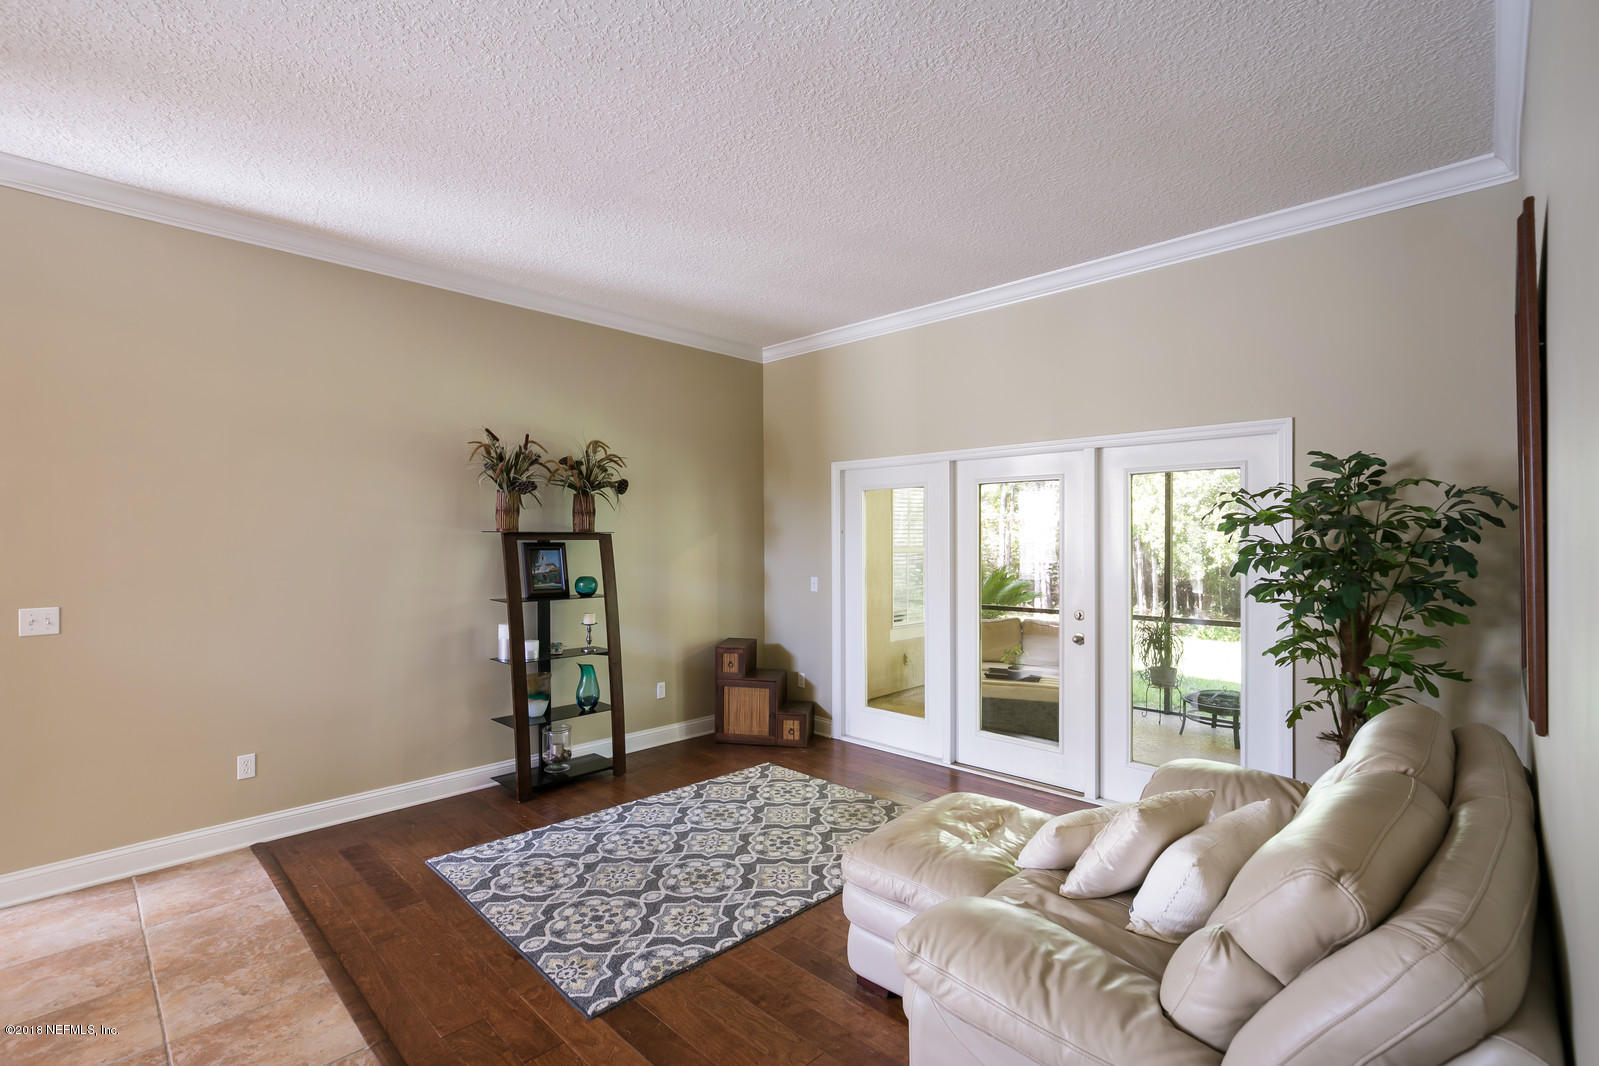 1411 CRESTED HERON, ST AUGUSTINE, FLORIDA 32092, 5 Bedrooms Bedrooms, ,4 BathroomsBathrooms,Residential - single family,For sale,CRESTED HERON,961125